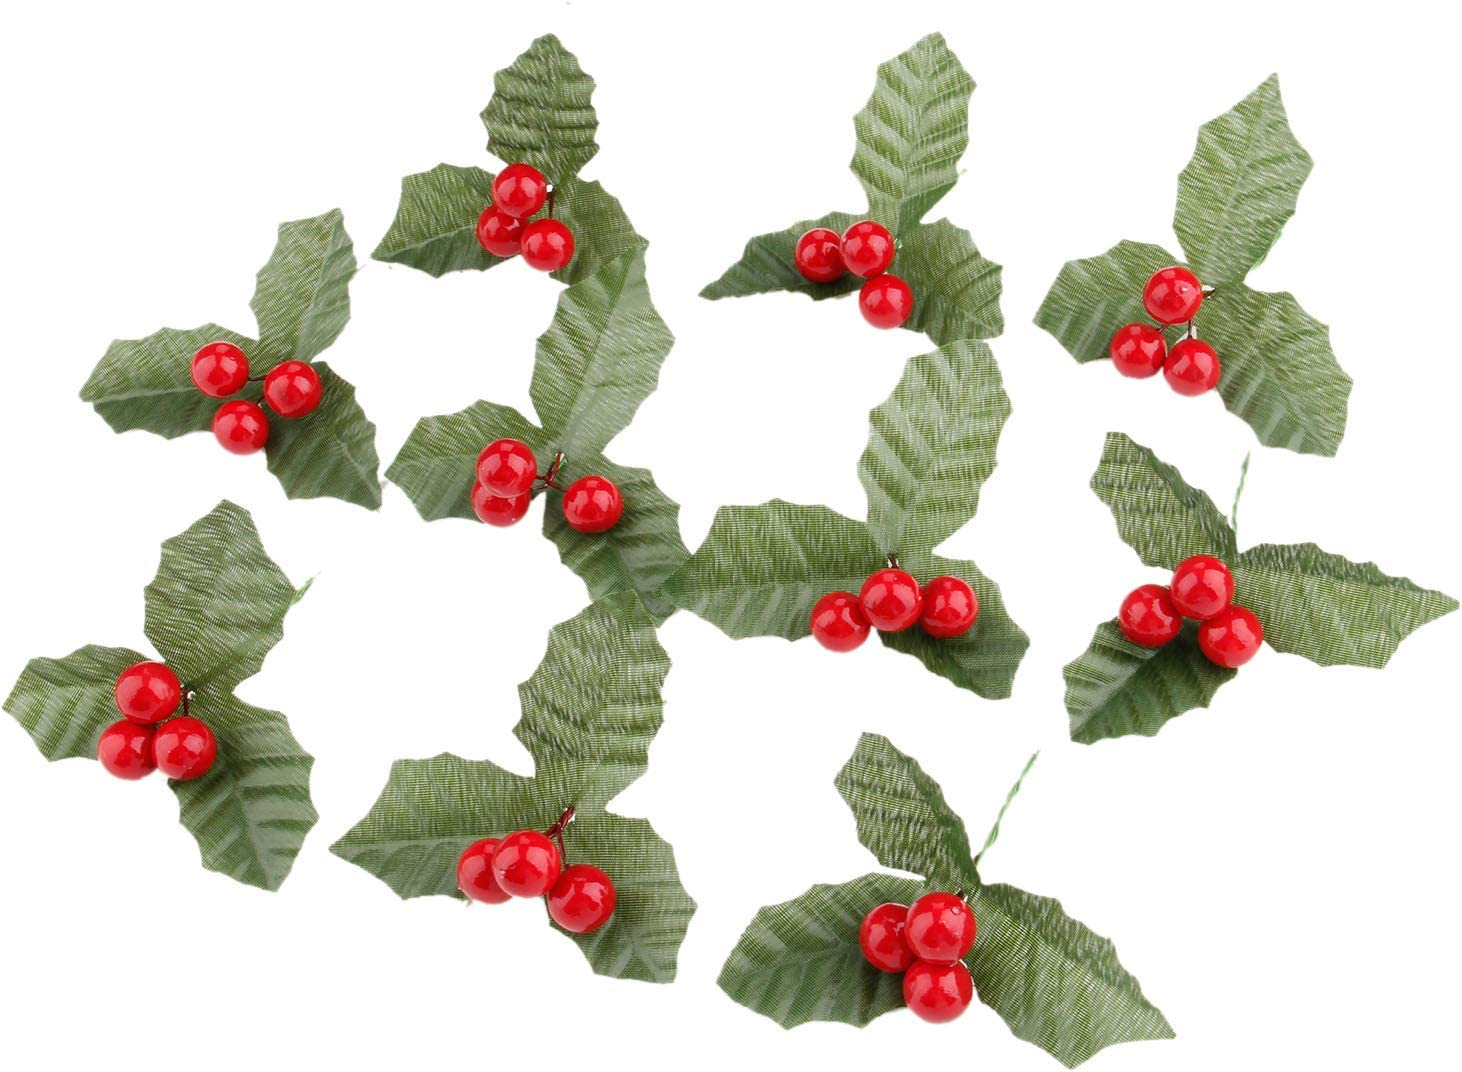 Yetaha 10 Pcs Artificial Leaf Holly Berries For Wedding Party Home Decoration Diy Christmas Artificial Leaf Flower Silk Leaves Furniture Decor